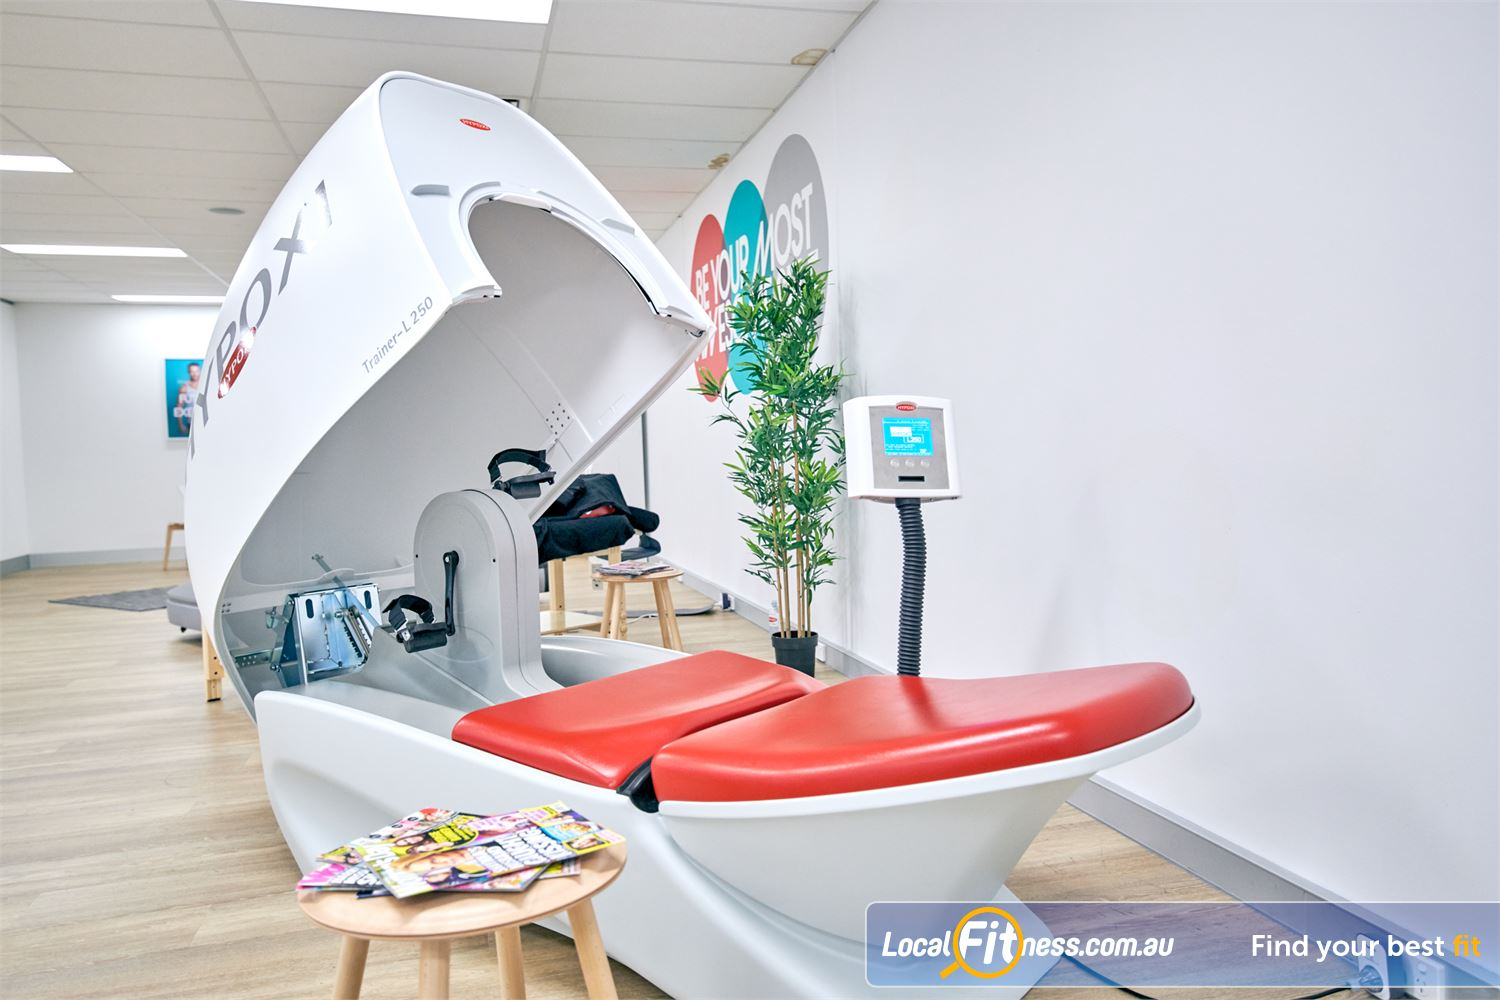 HYPOXI Weight Loss Waterloo Help your body work smarter, not harder in our HYPOXI Waterloo weight loss studio.